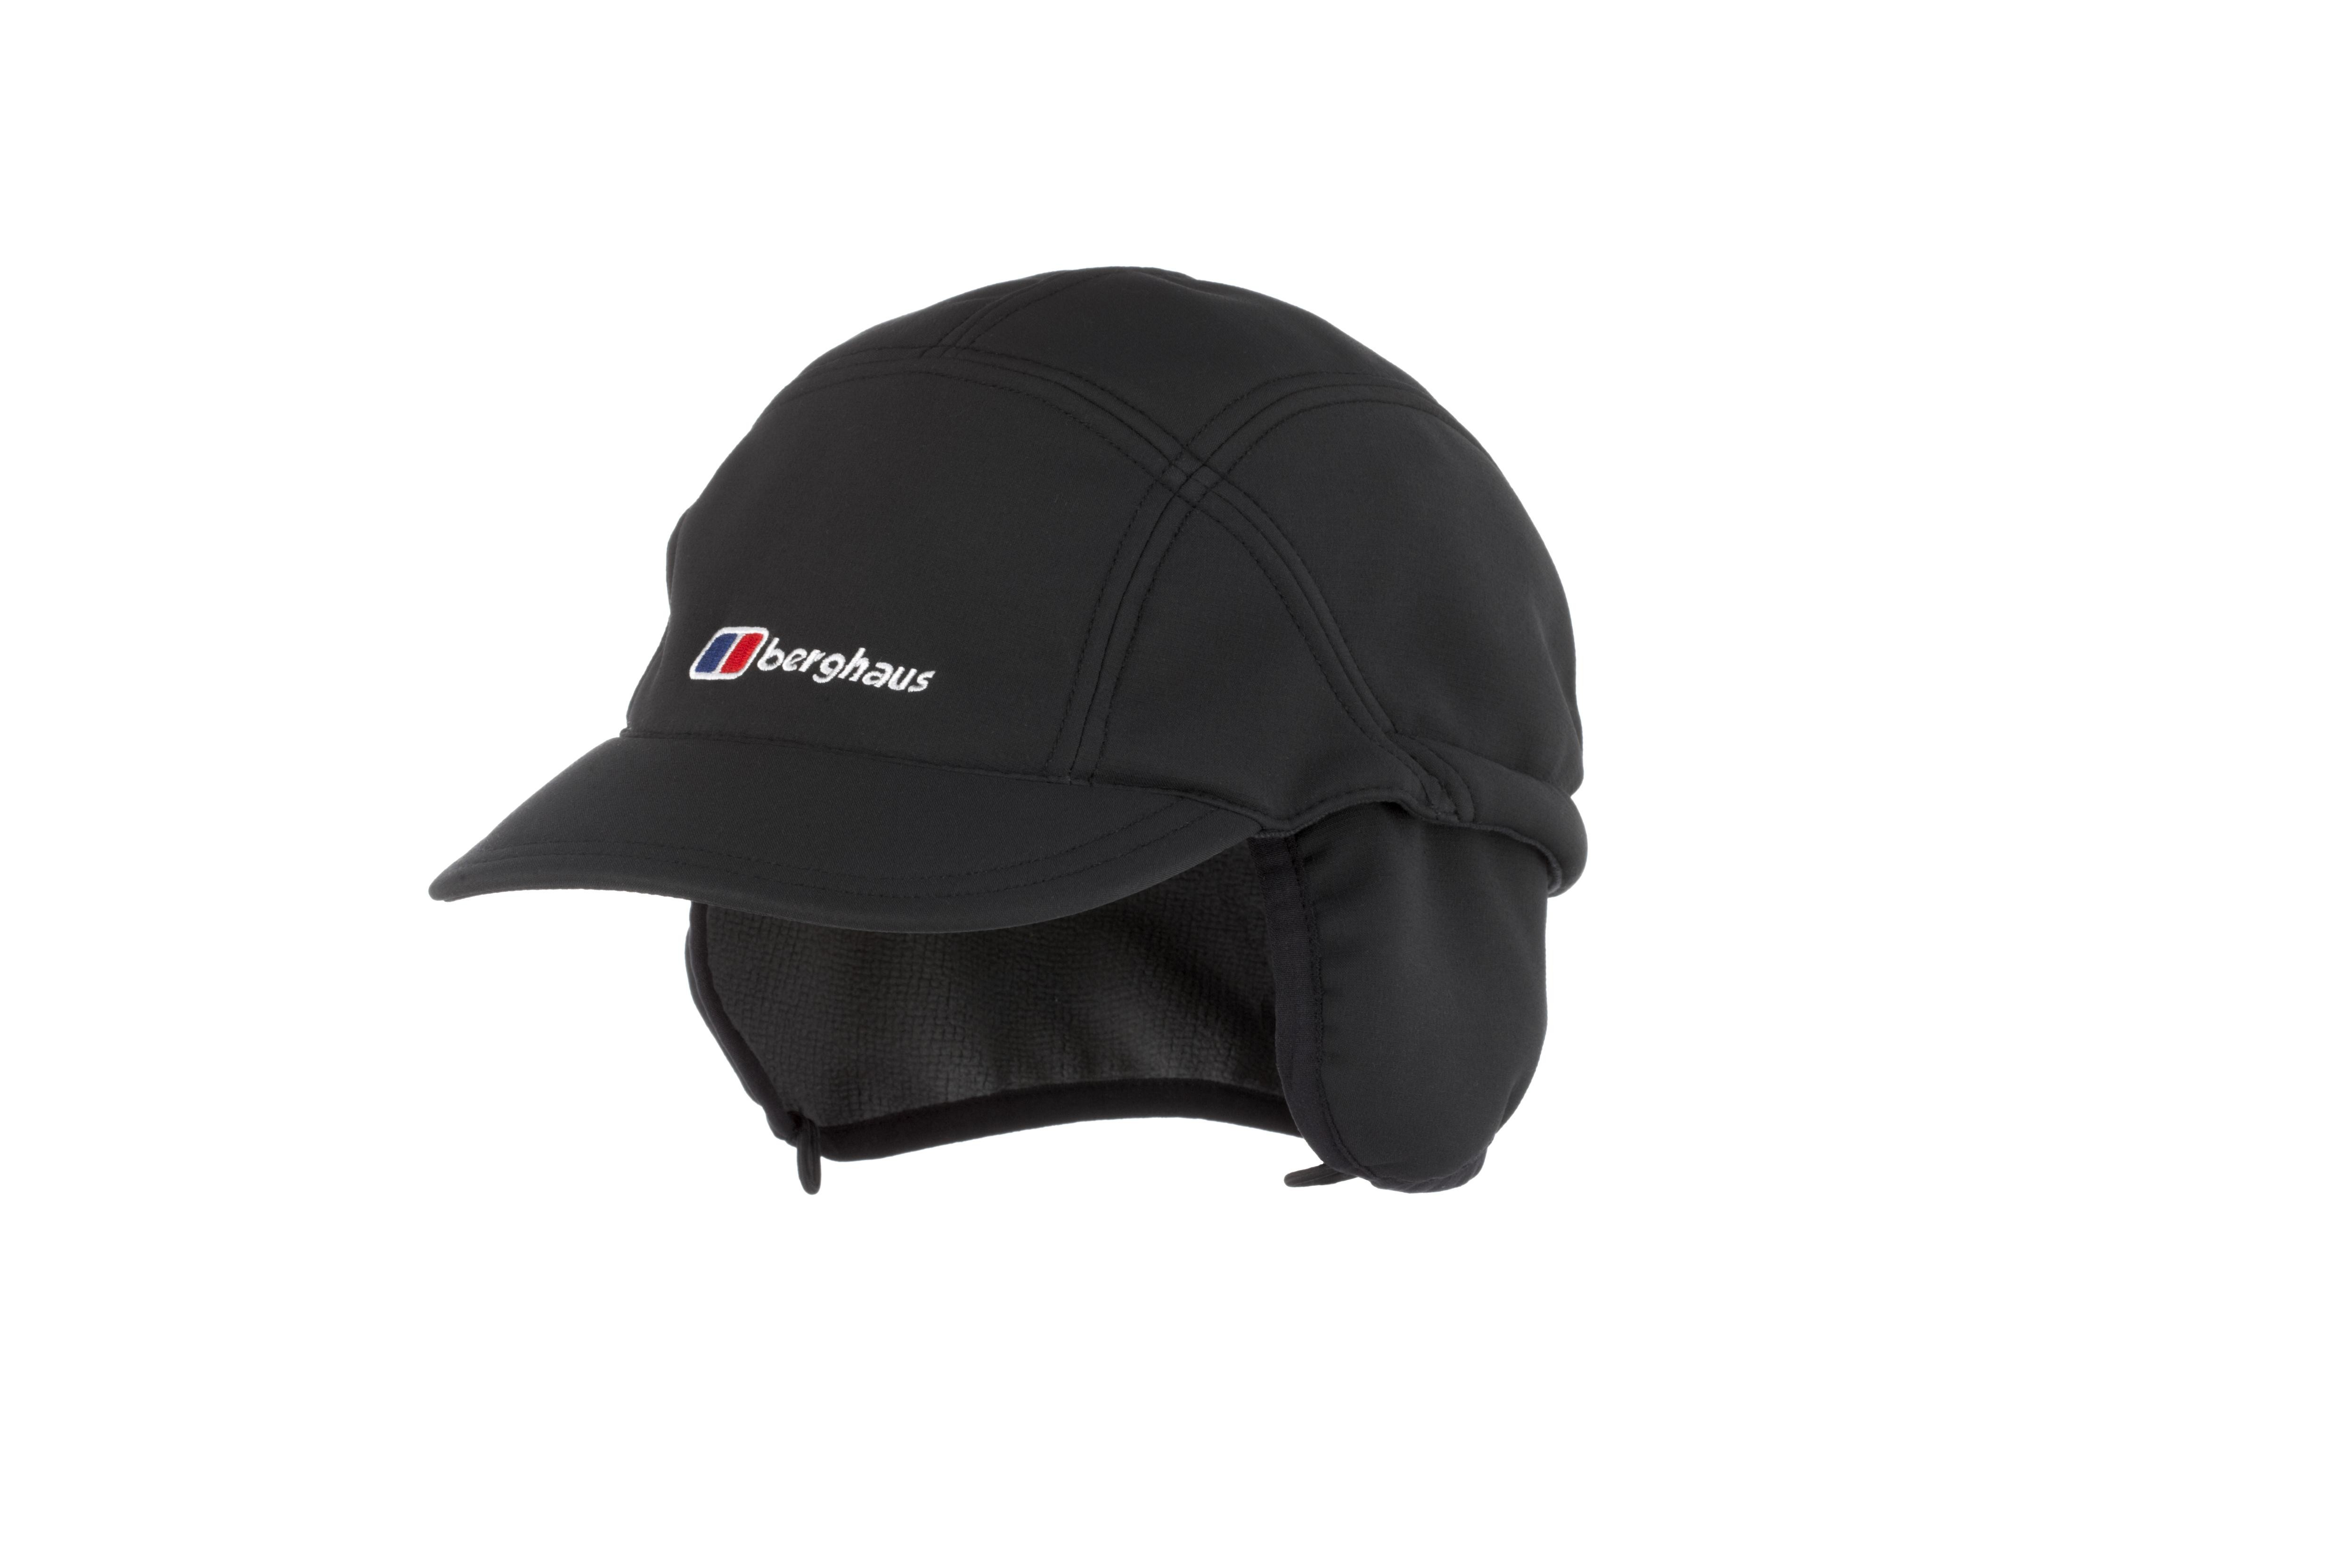 0b225d193ca Berghaus Windstopper Mountain Cap